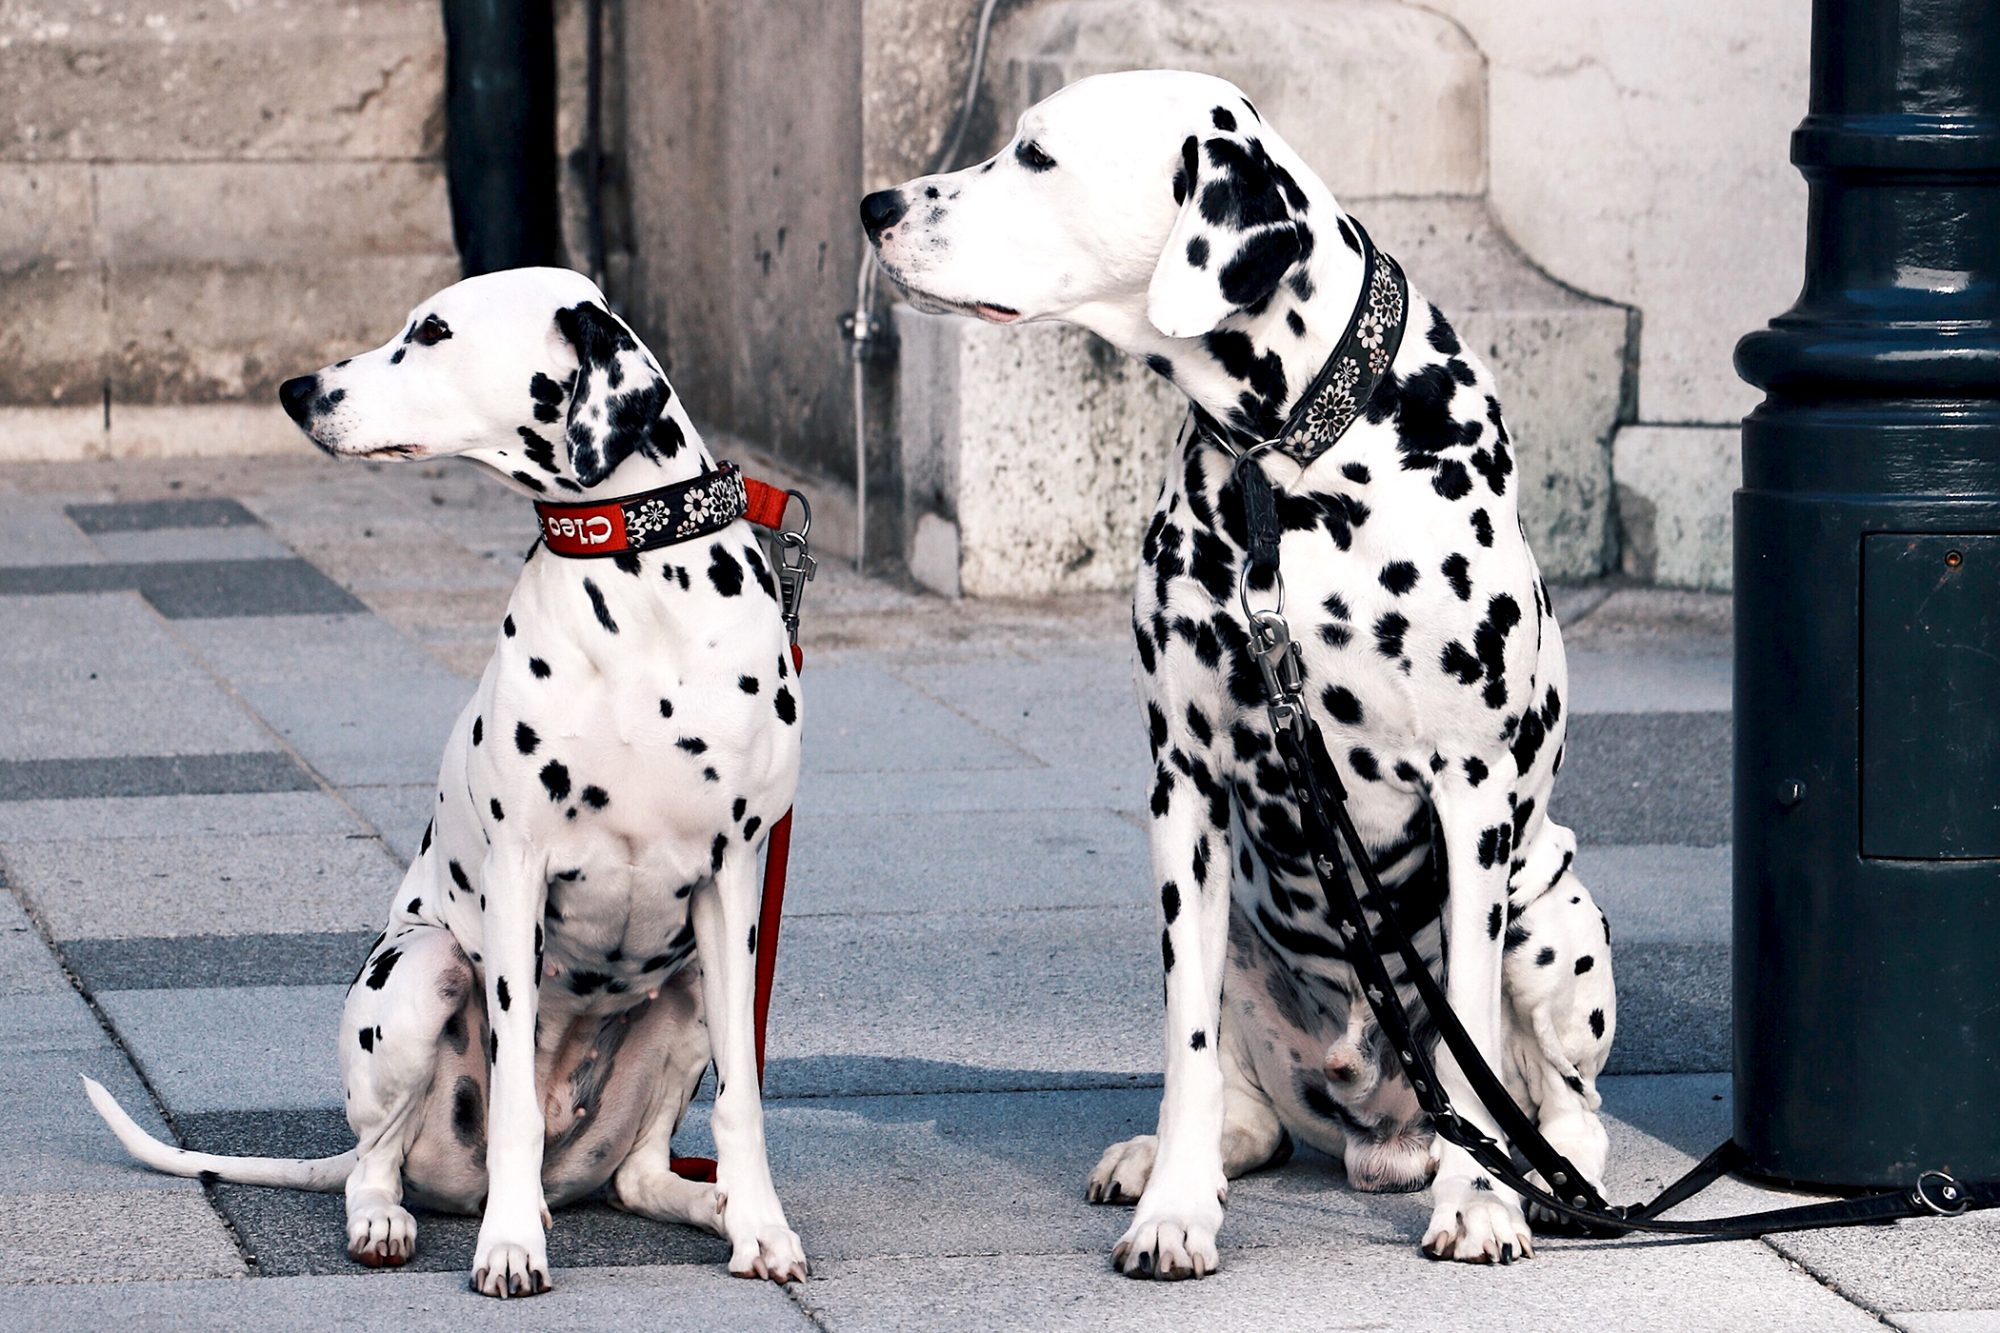 Two Dalmatians sitting next to a lamp post